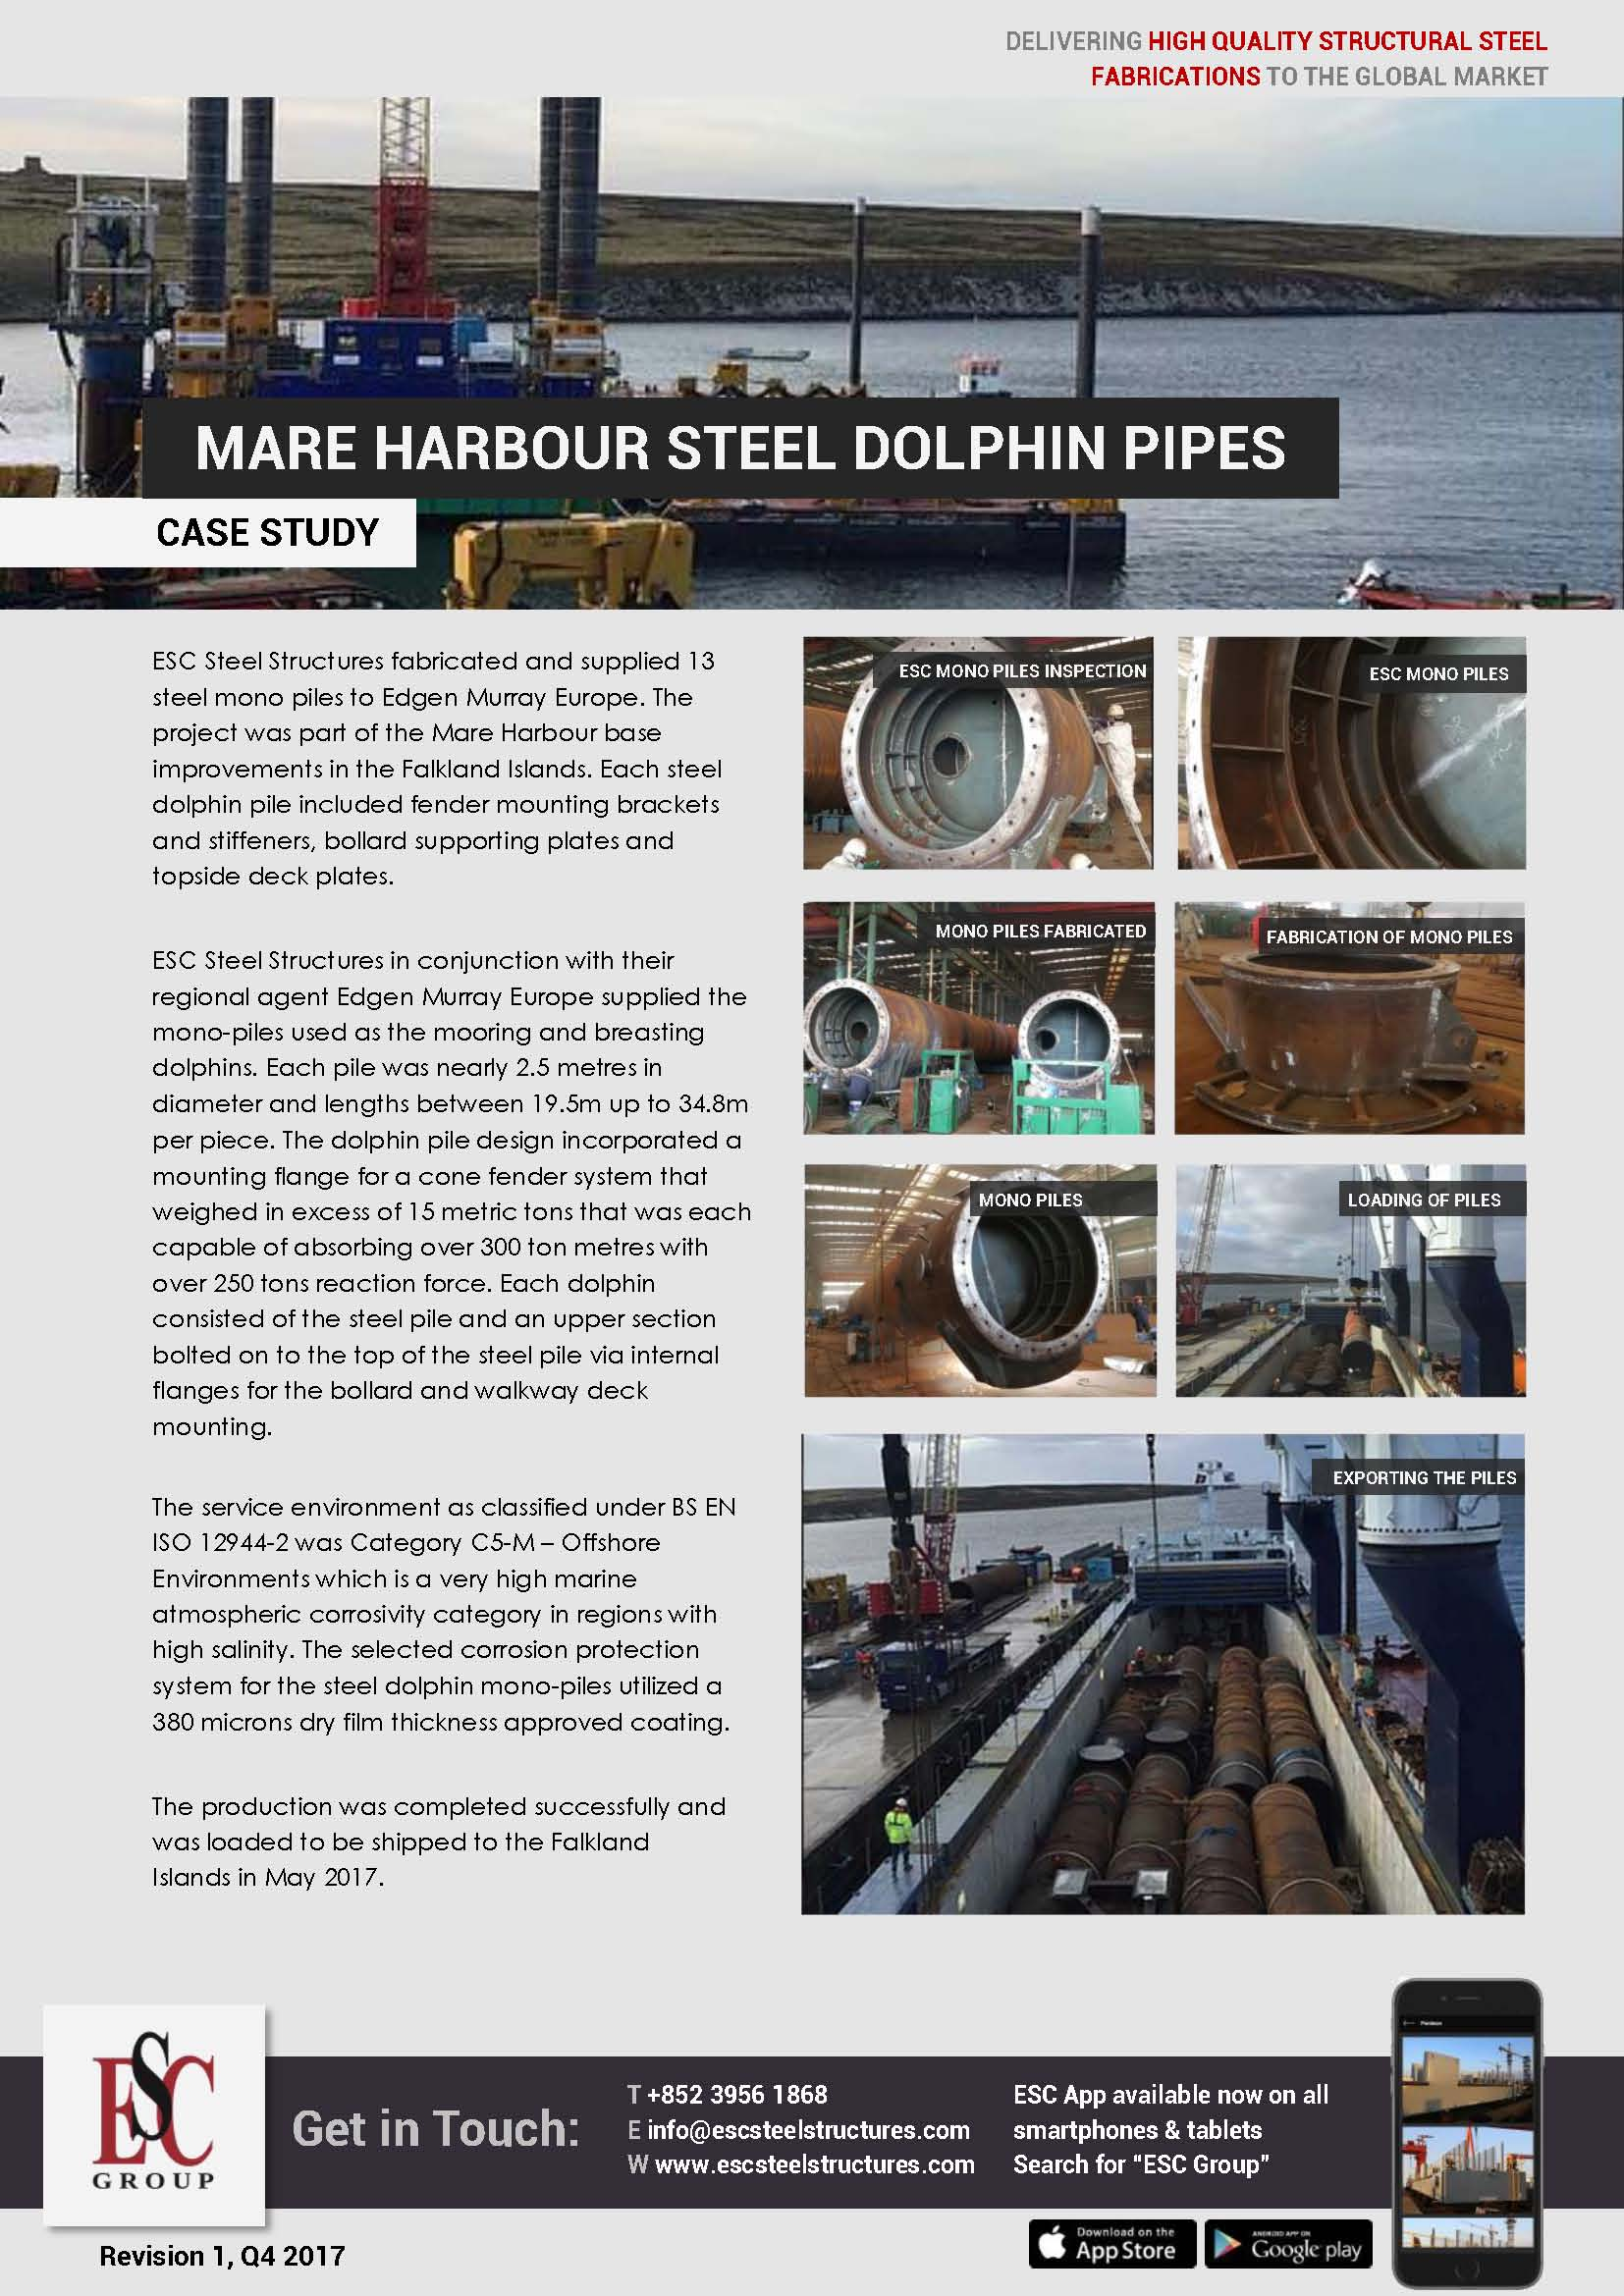 Mare Harbour Steel Dolphin Pipes